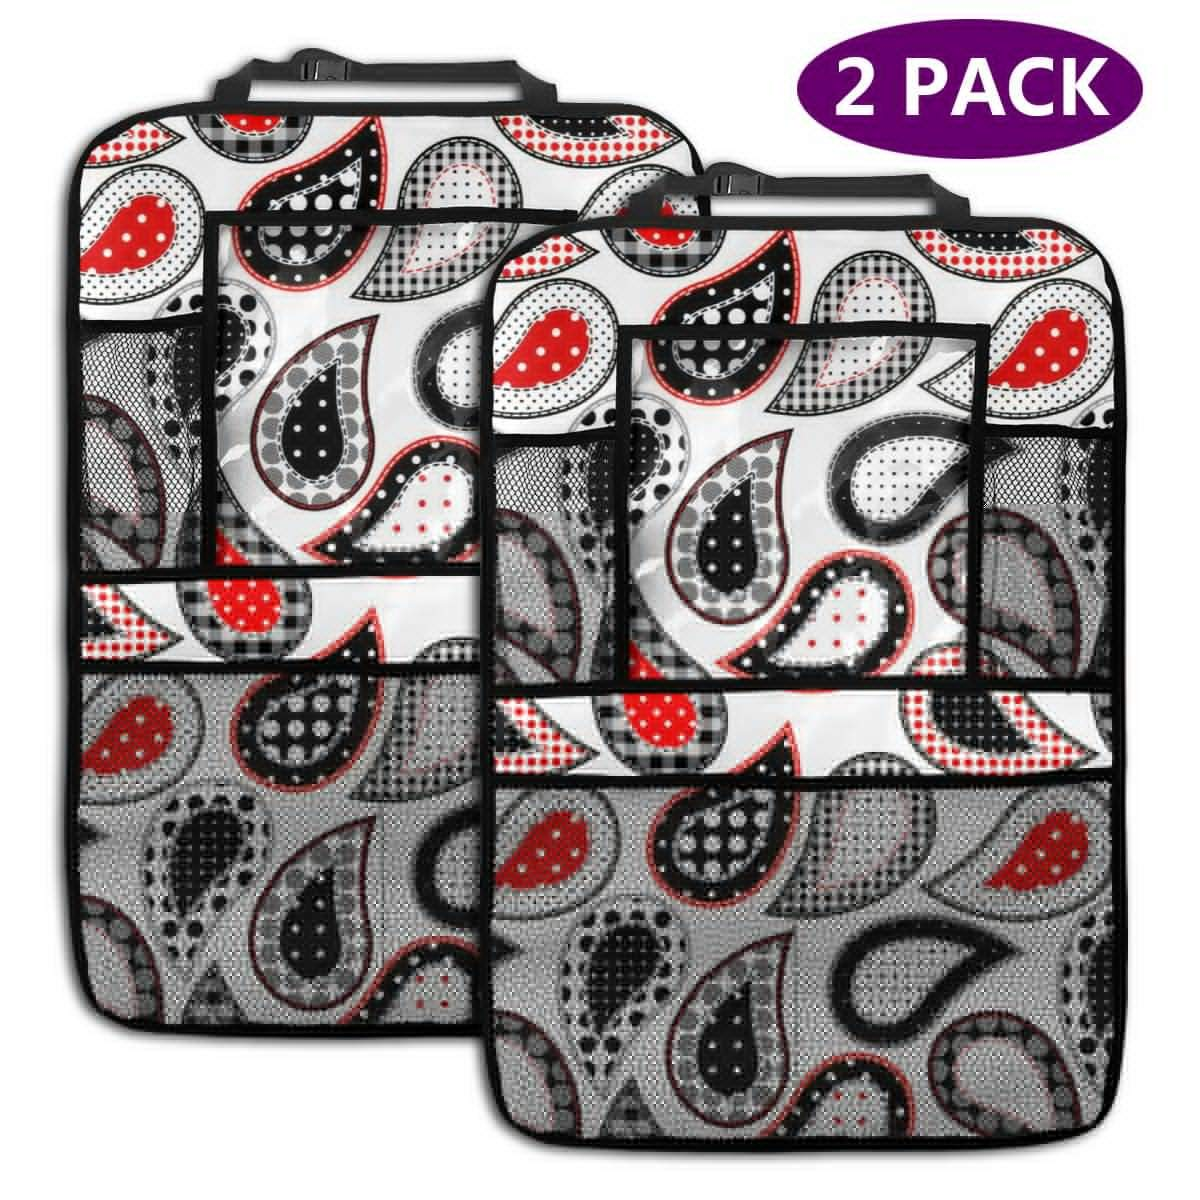 Paisley Pattern in Patchwork Style Car Backseat Organizer with 2 Pcs Seatback Auto Kick Mat Back Seat Protector for Multi Storage Pocket by HBWUYZU-T